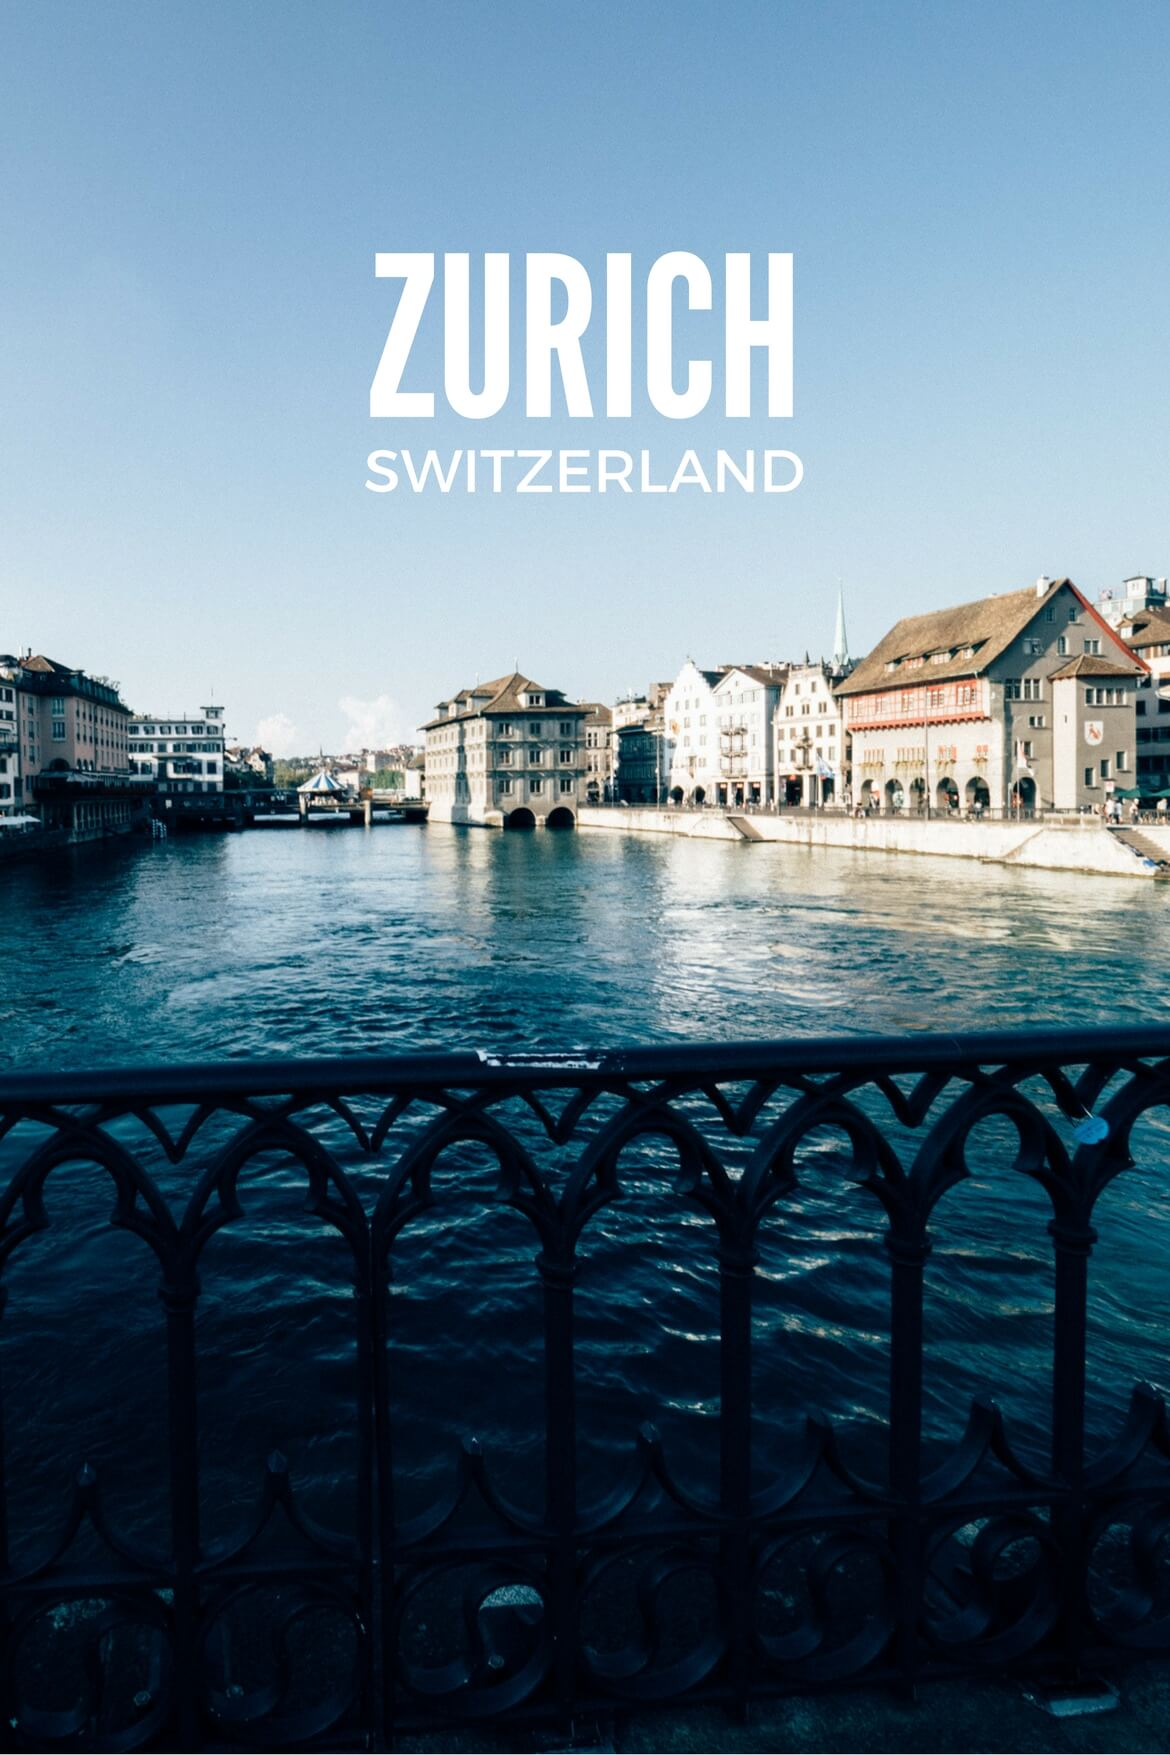 Zurich: Then and Now